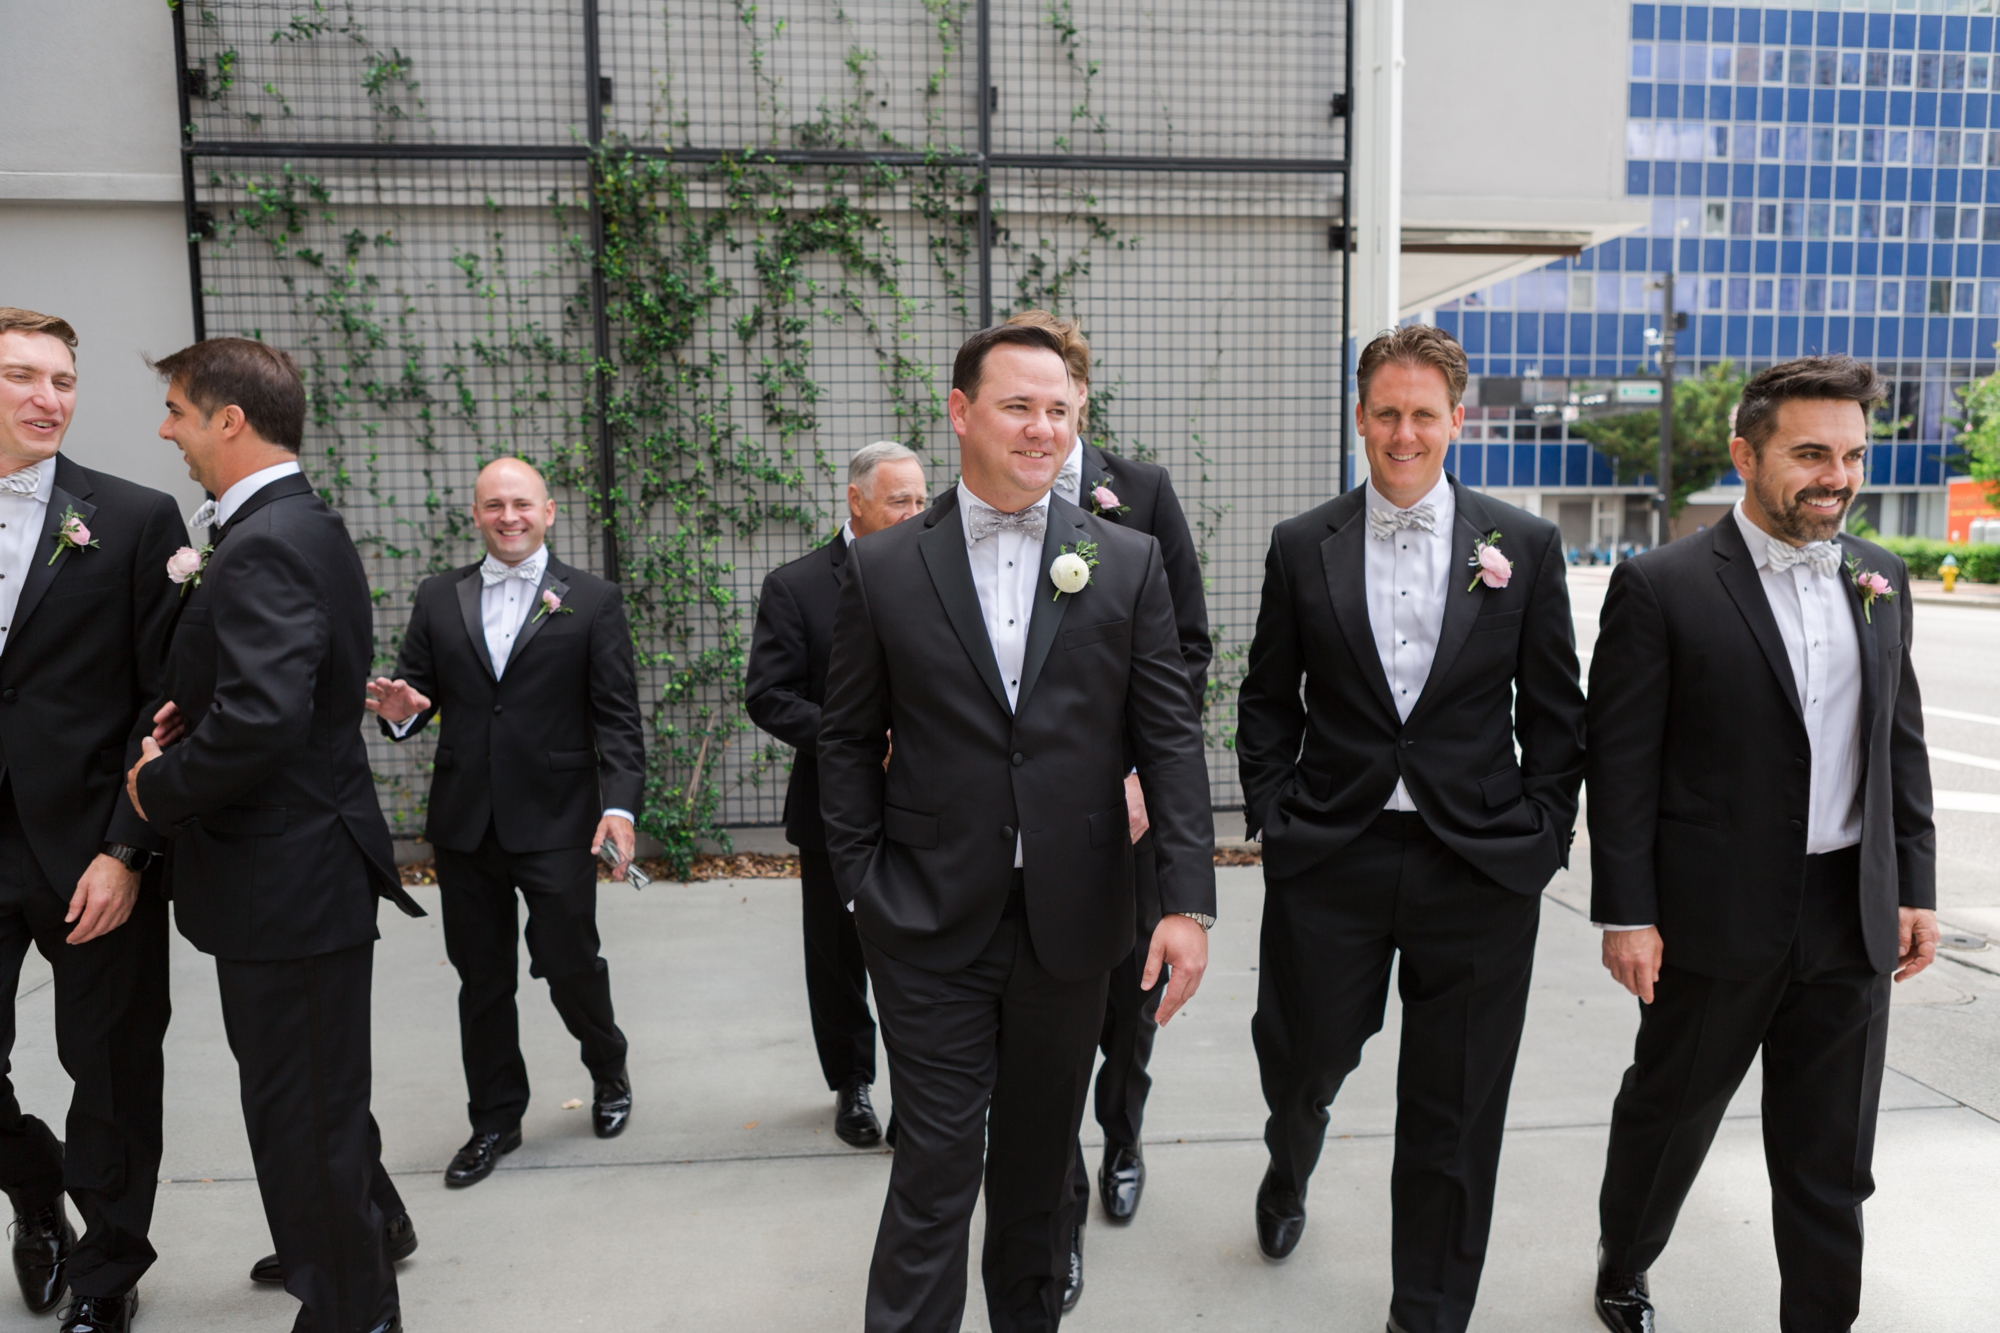 Groomsmens pictures